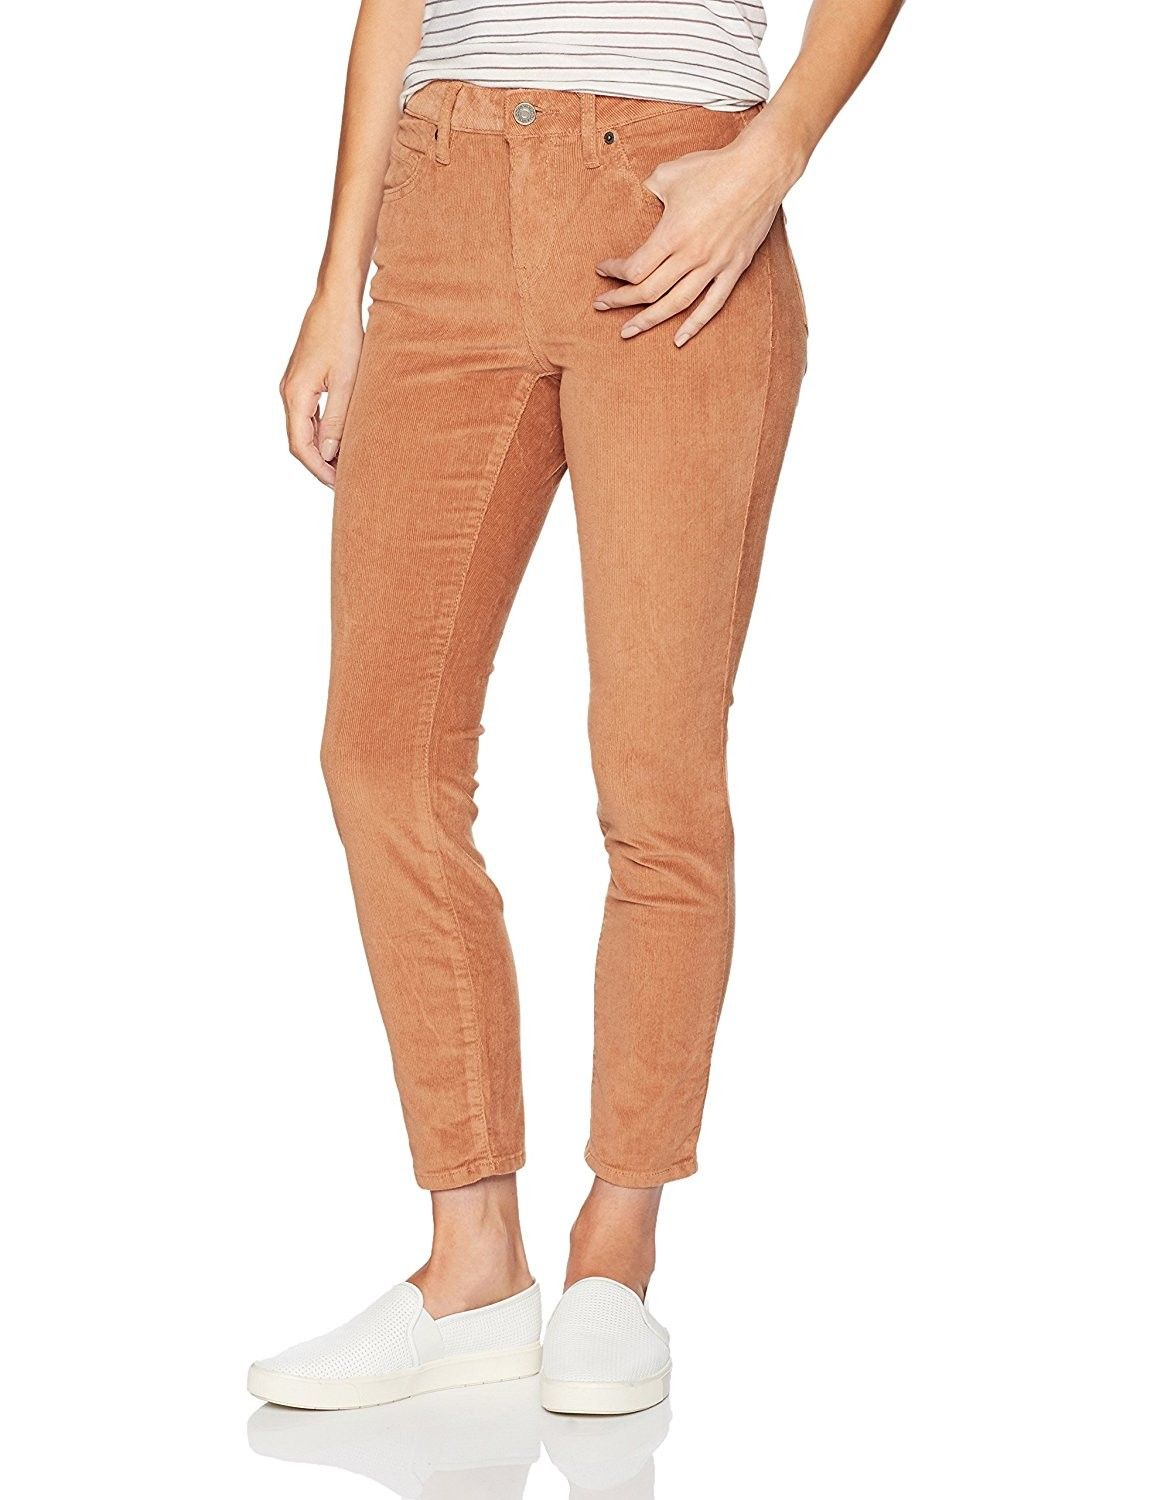 14662d78a08 Women s Super Stoned Skinny Fit Ankle Denim Pant - Coral ...